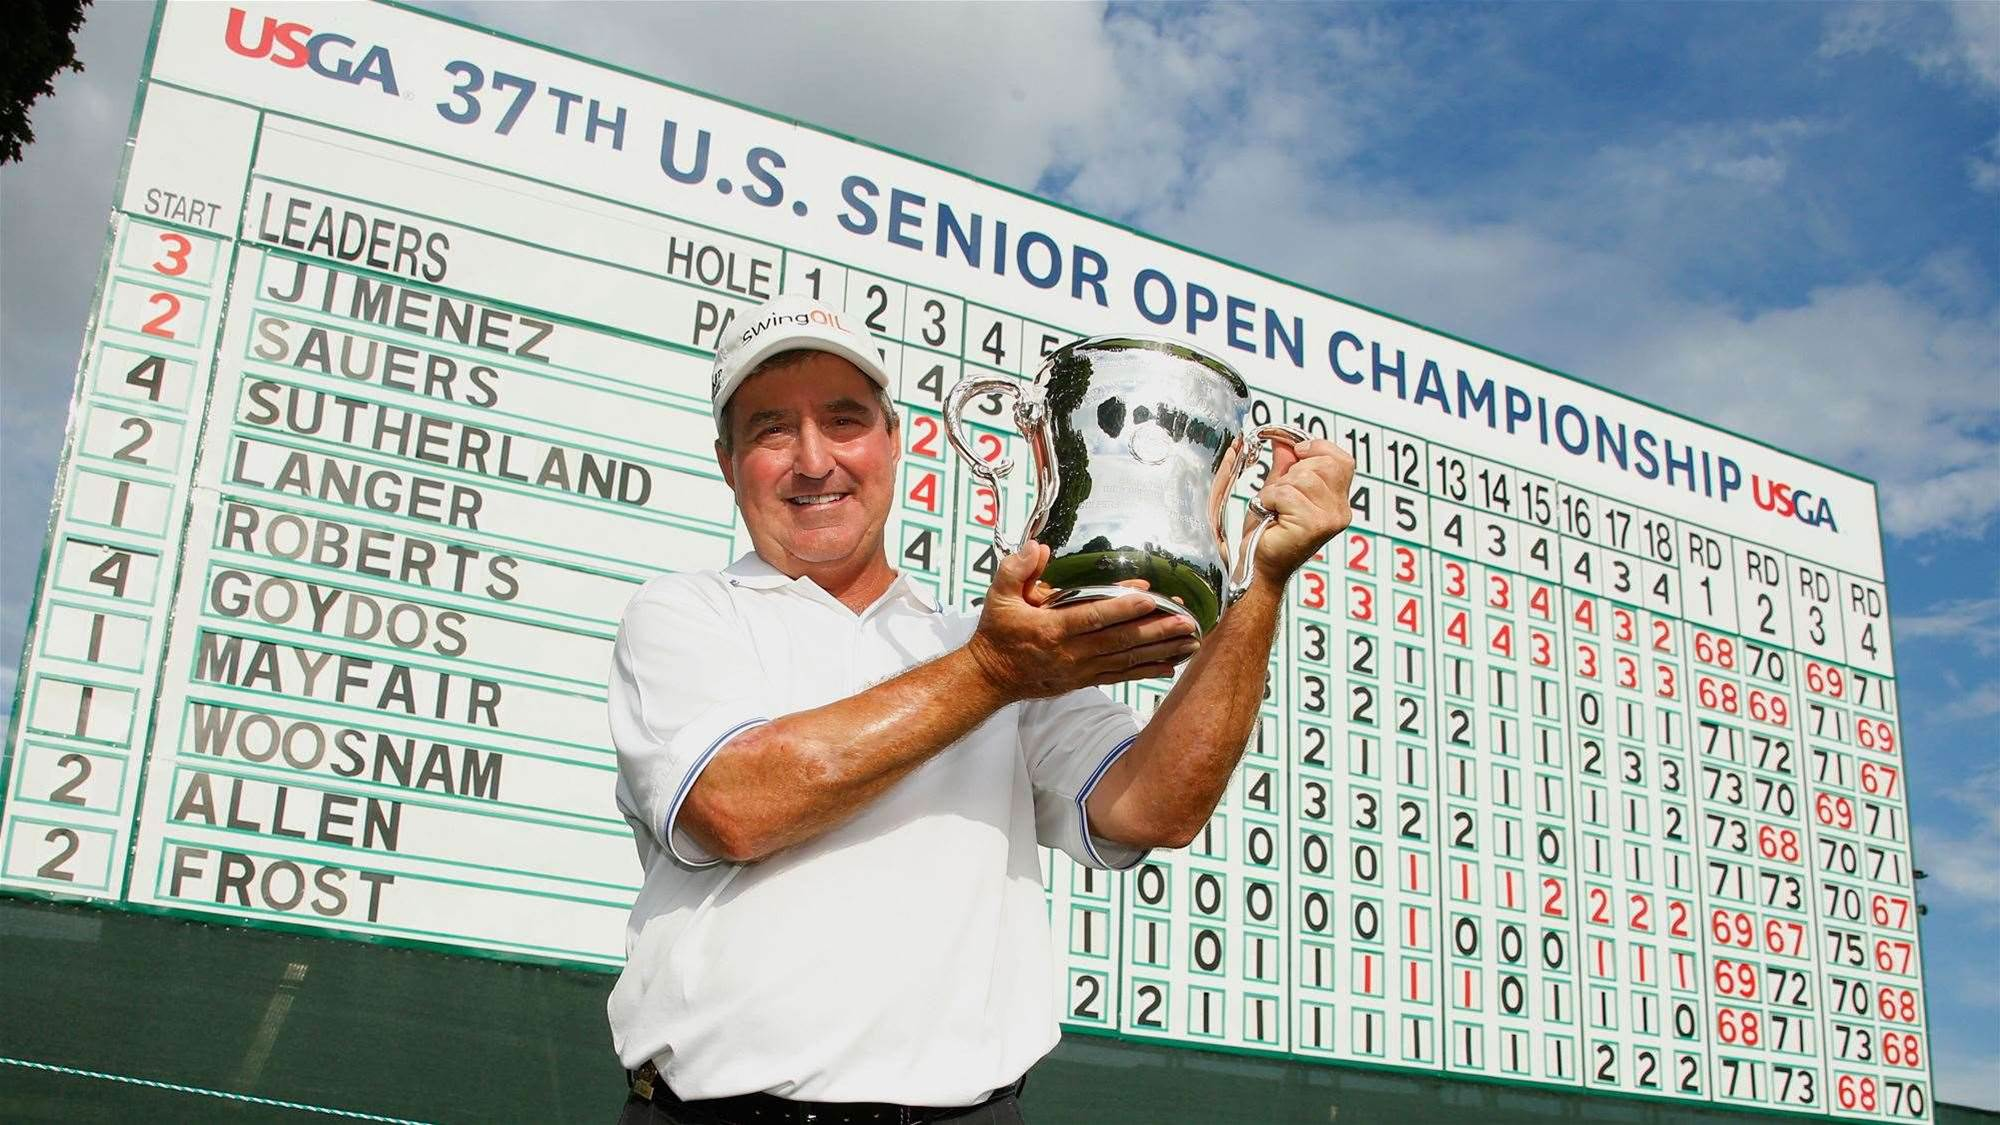 Sauers beats rare illness to win U.S Senior Open